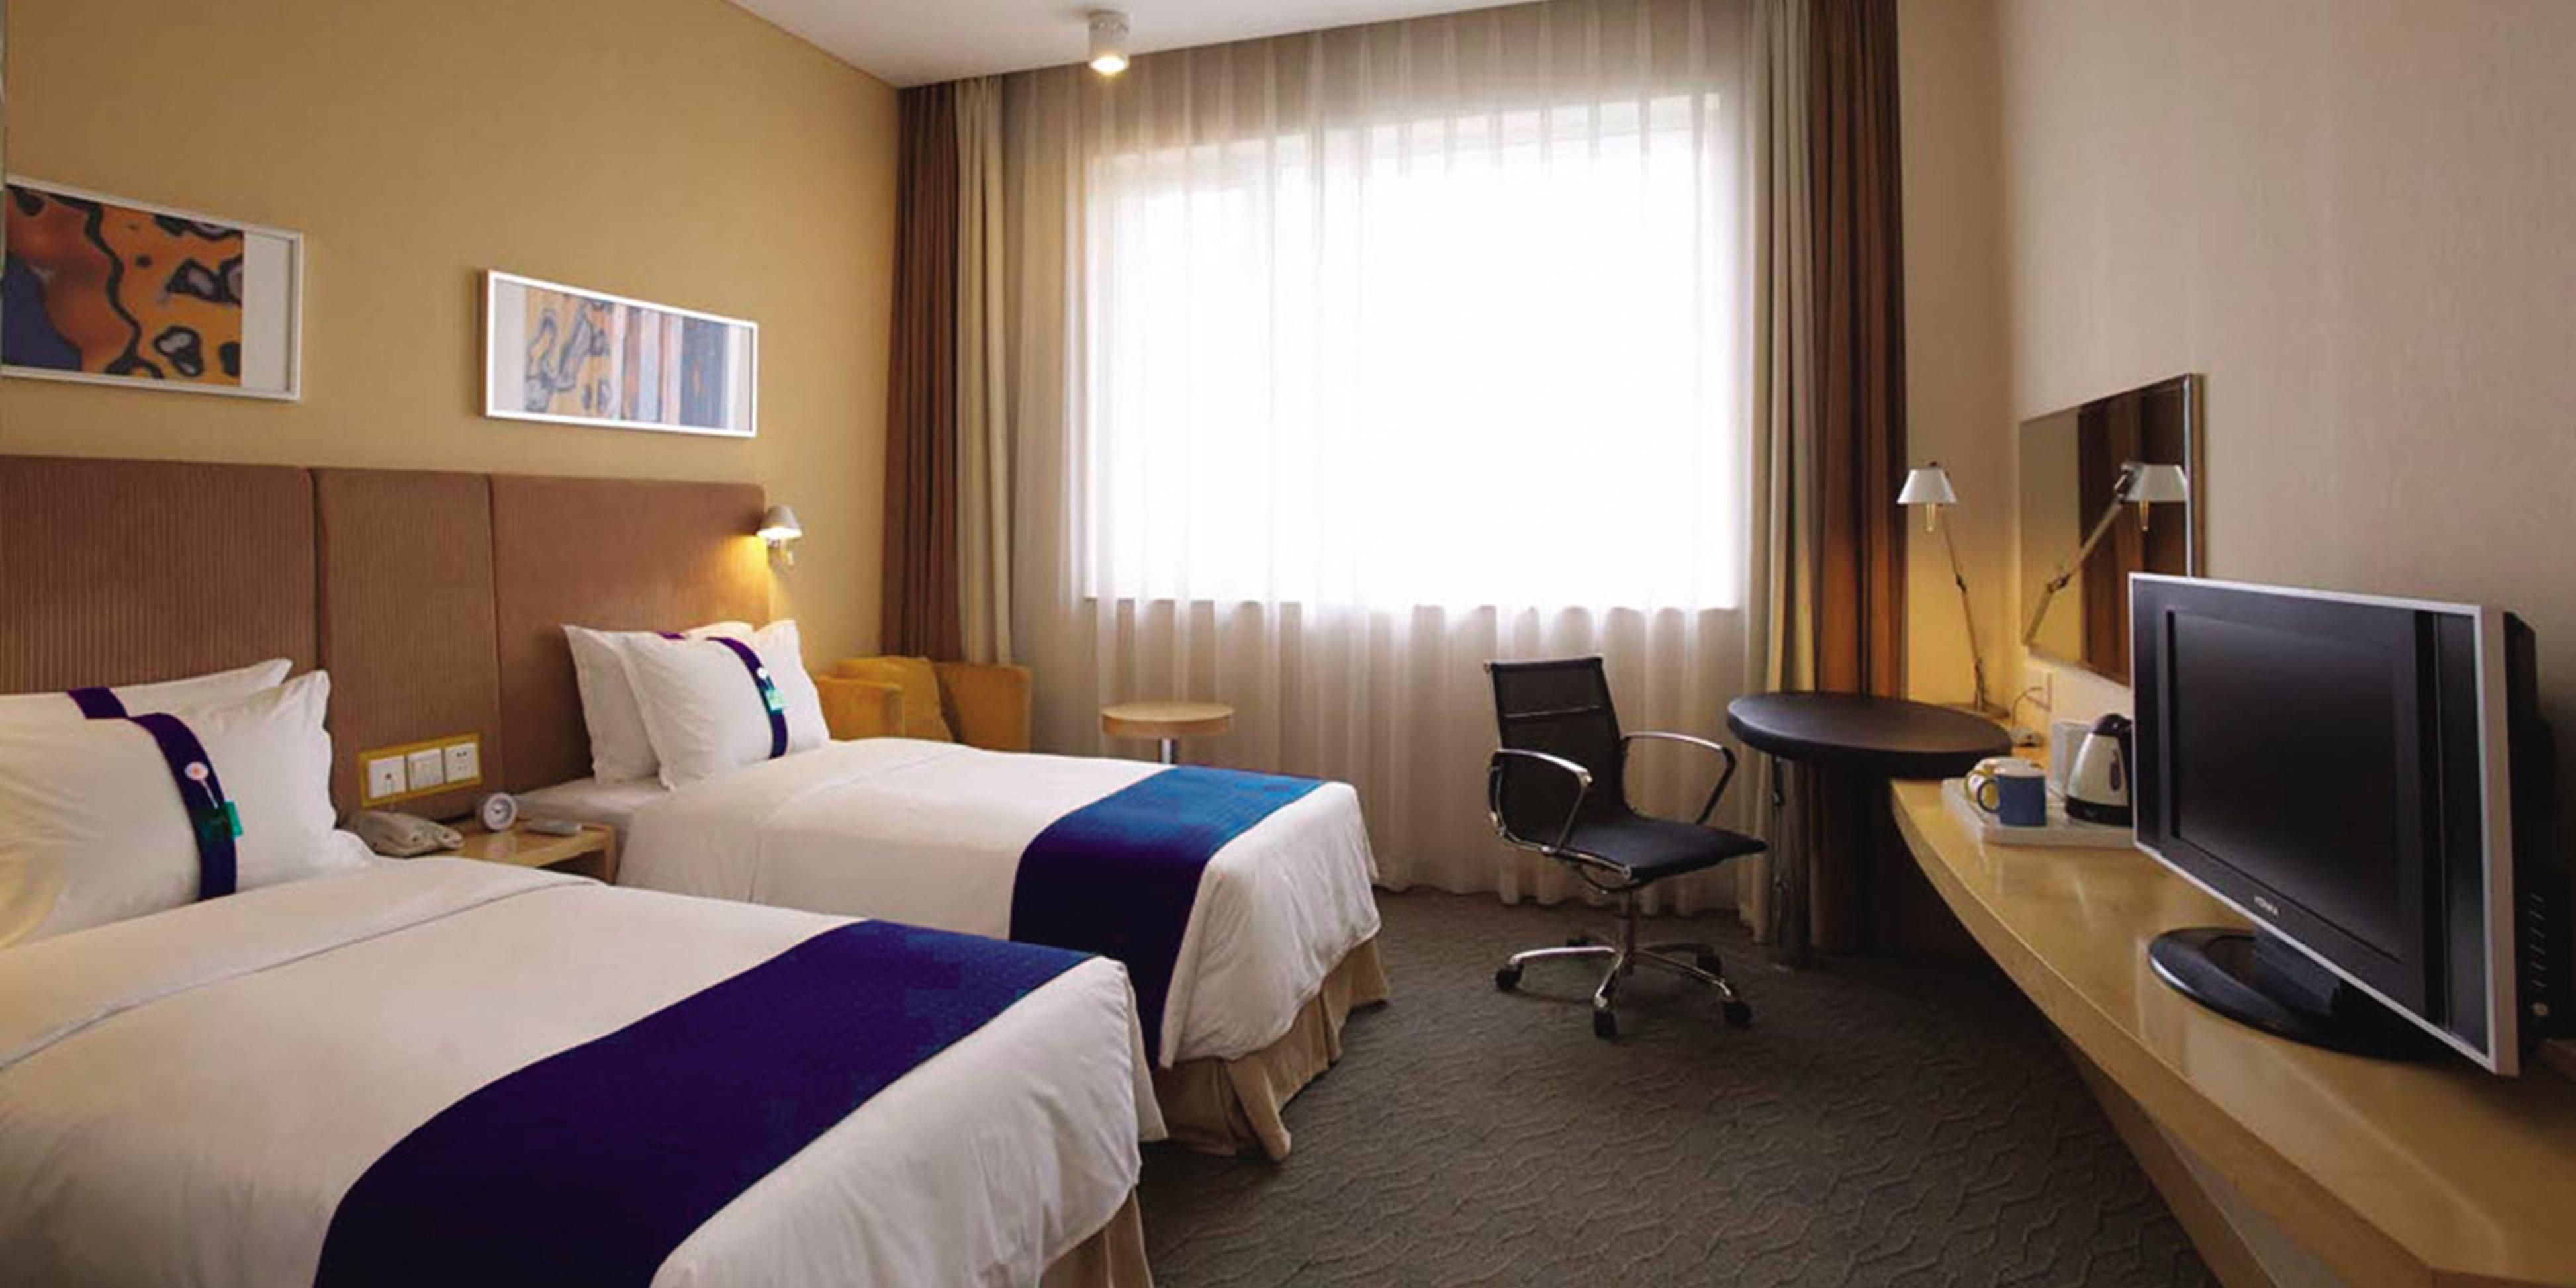 holiday inn express langfang new chaoyang hotel by ihg